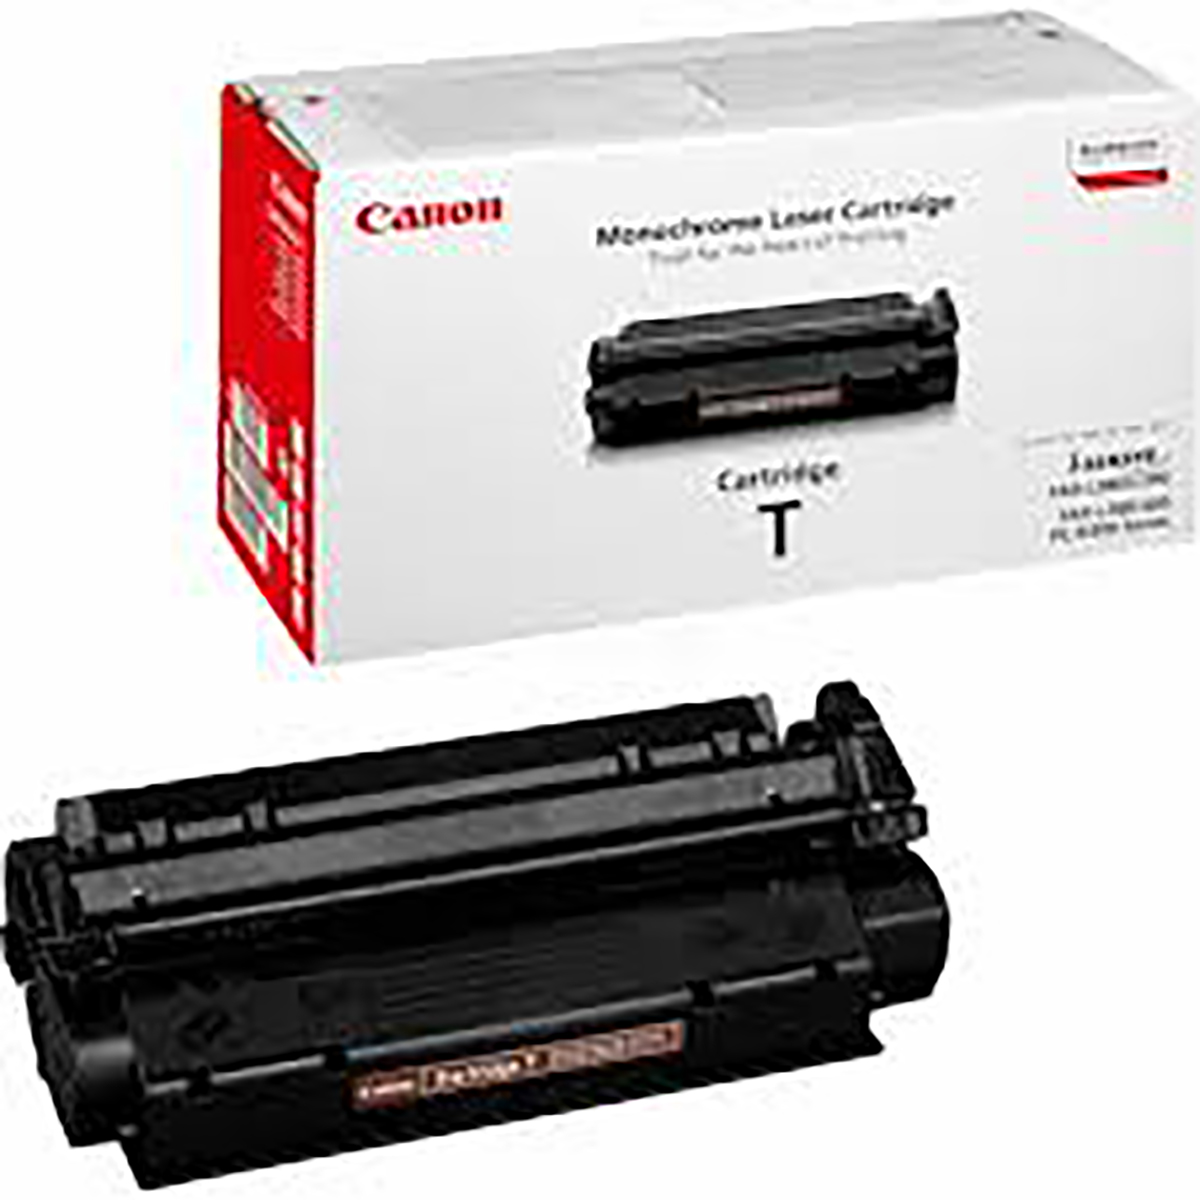 Canon Cartridge T Combined Toner/Drum Kit